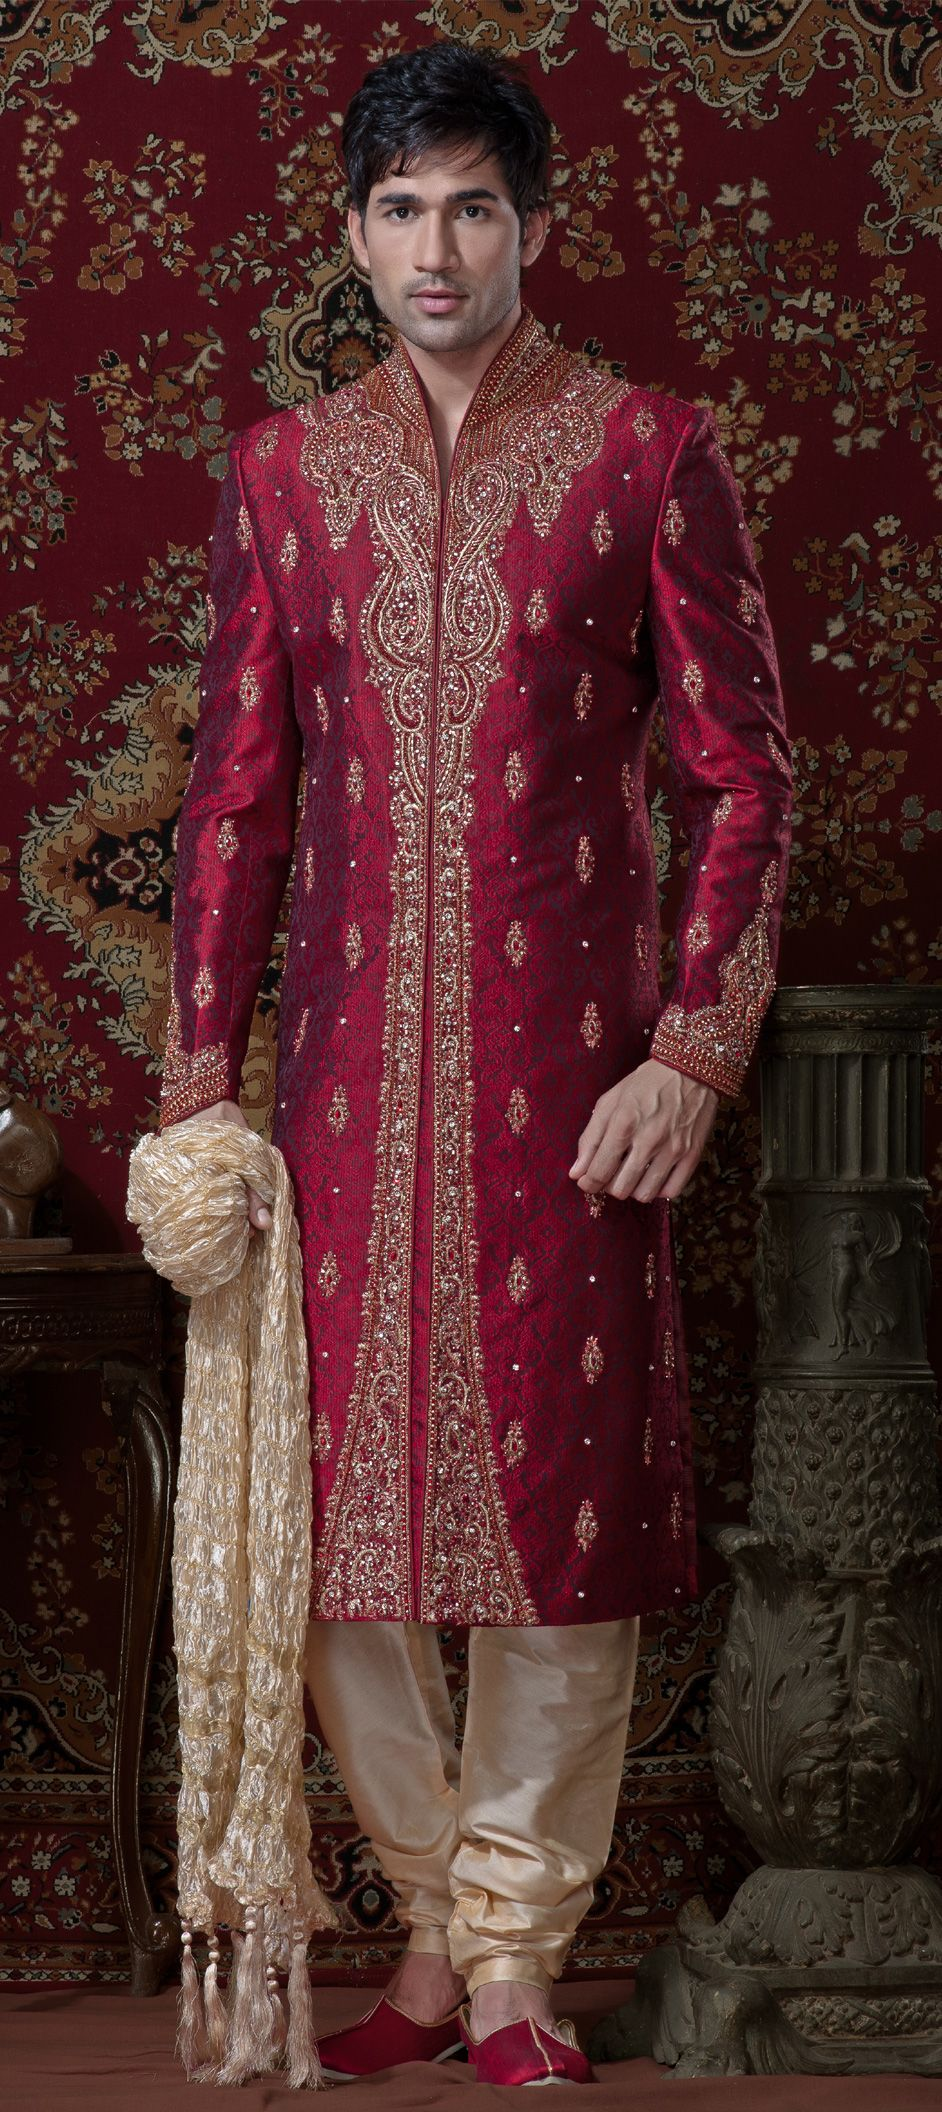 12088: Red and Maroon color family Sherwani. | Fashion fashion ...